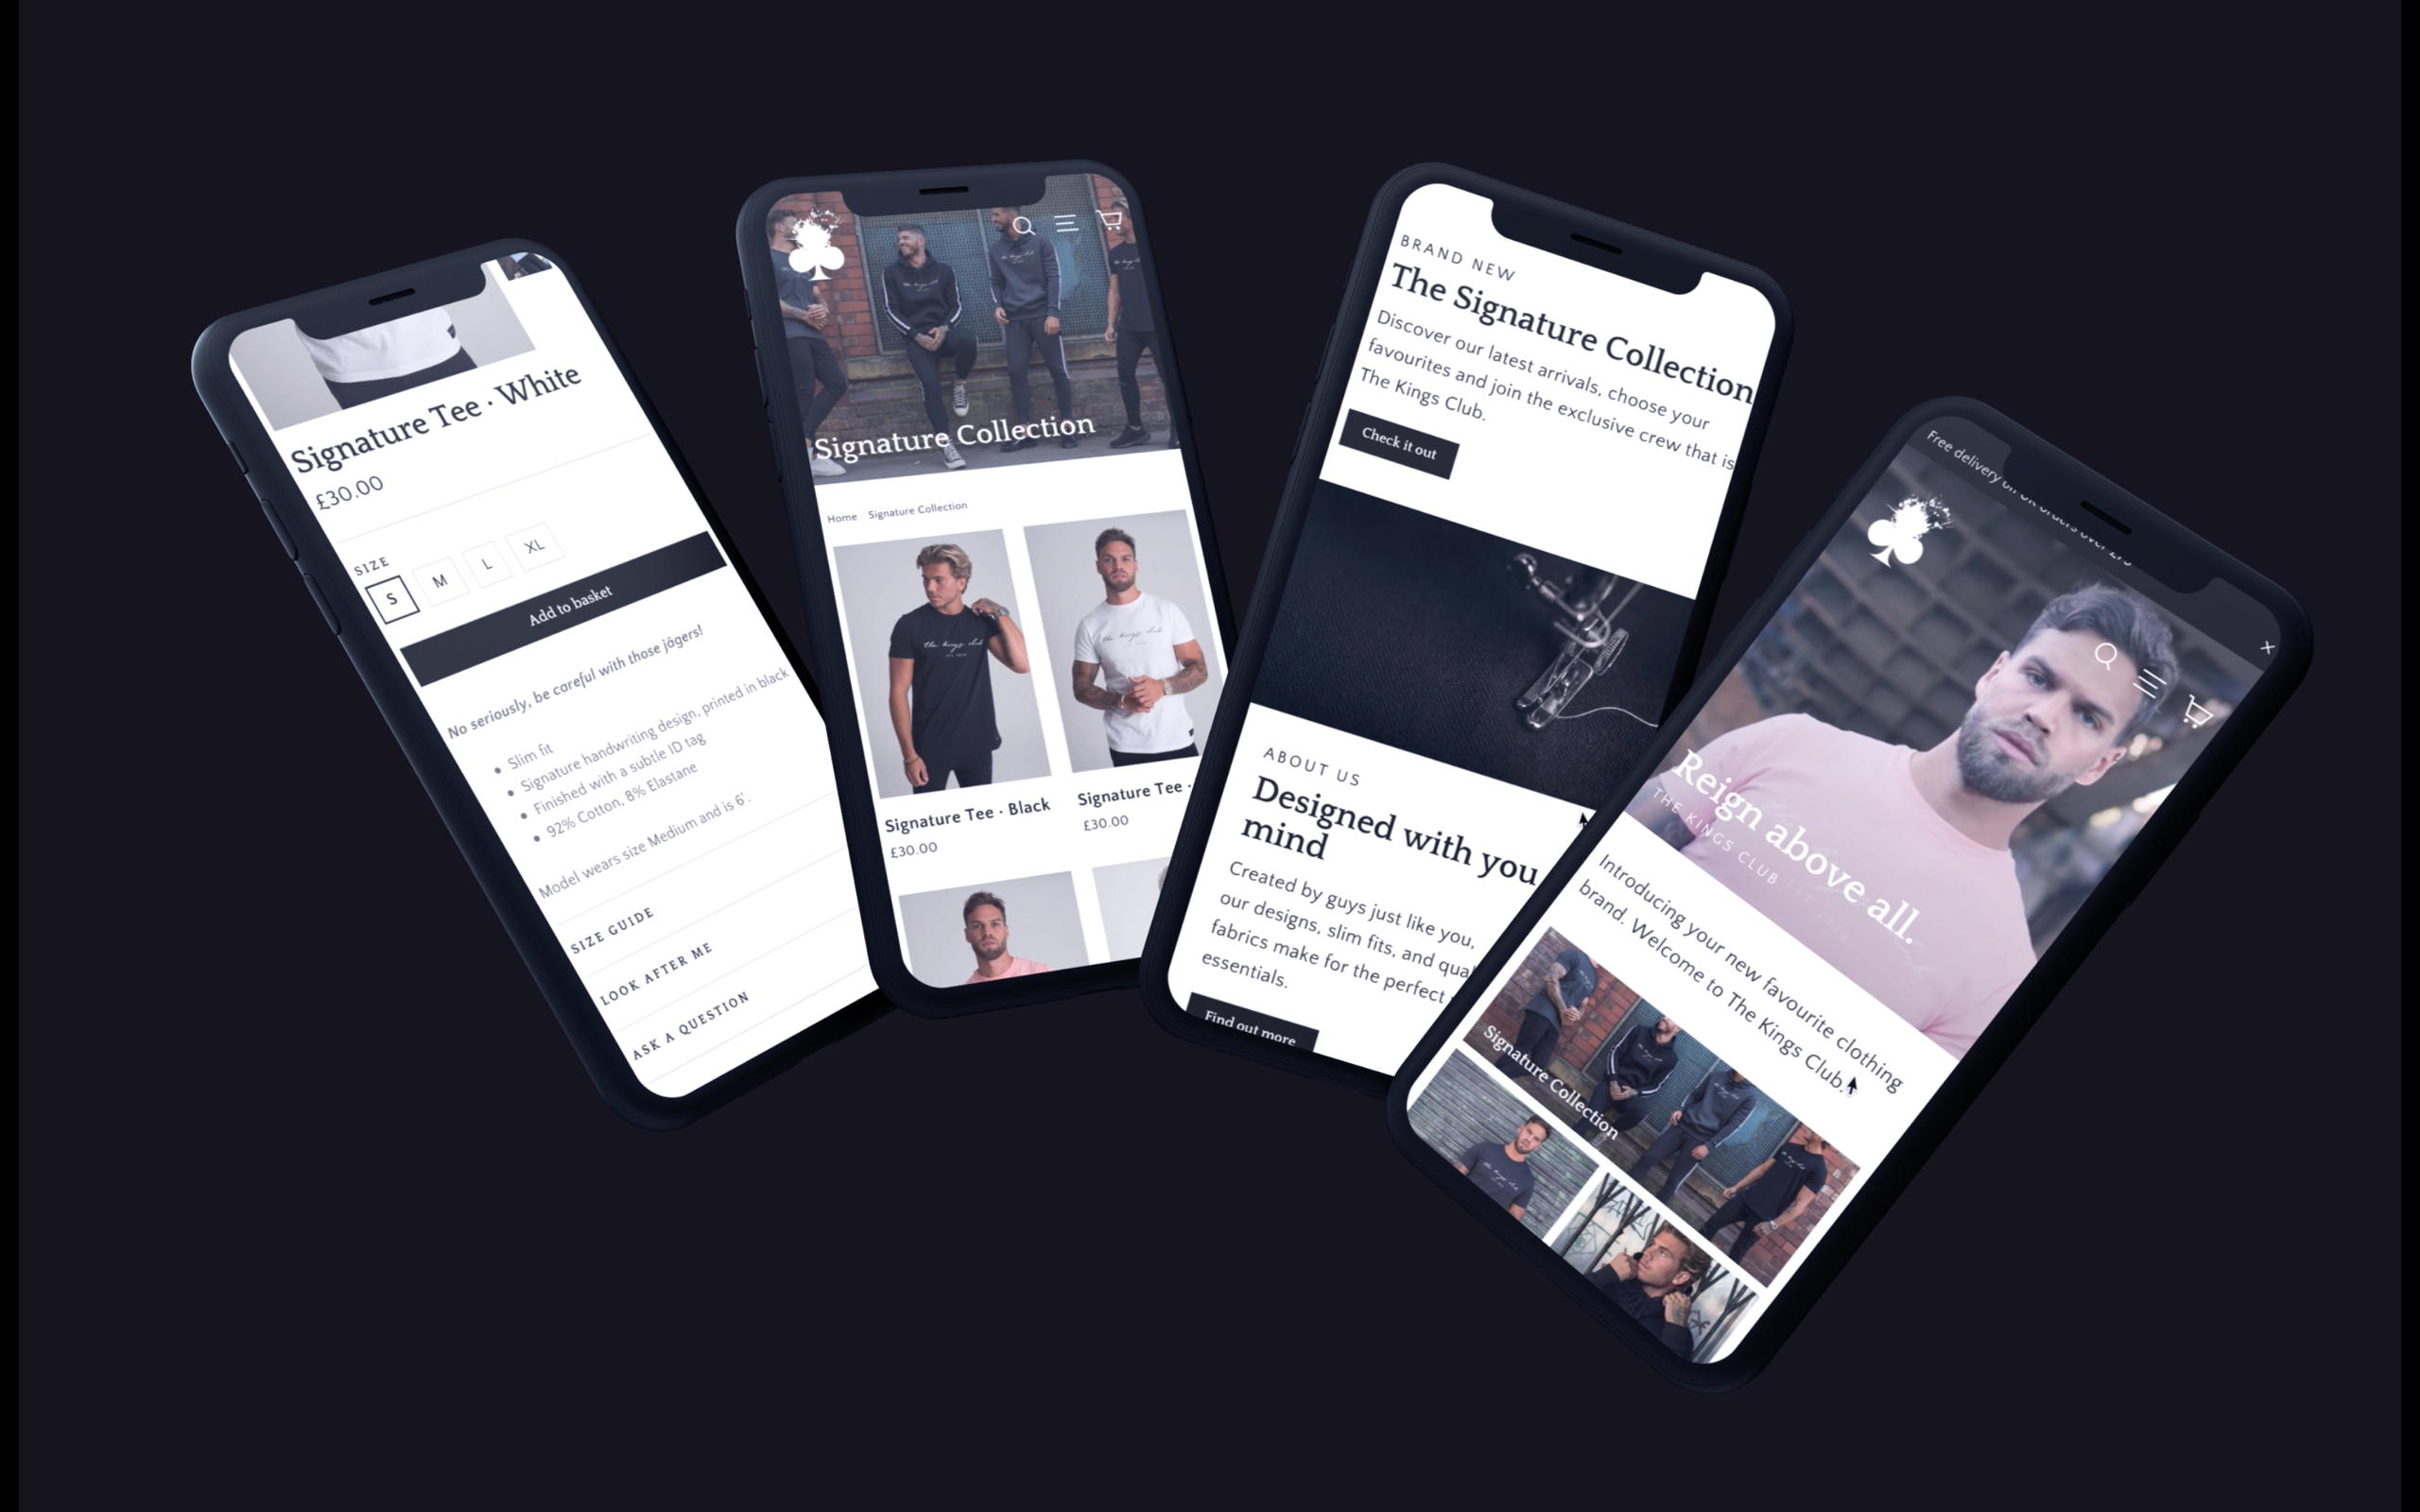 Mobile-first website design by Jack Watkins for The Kings Club